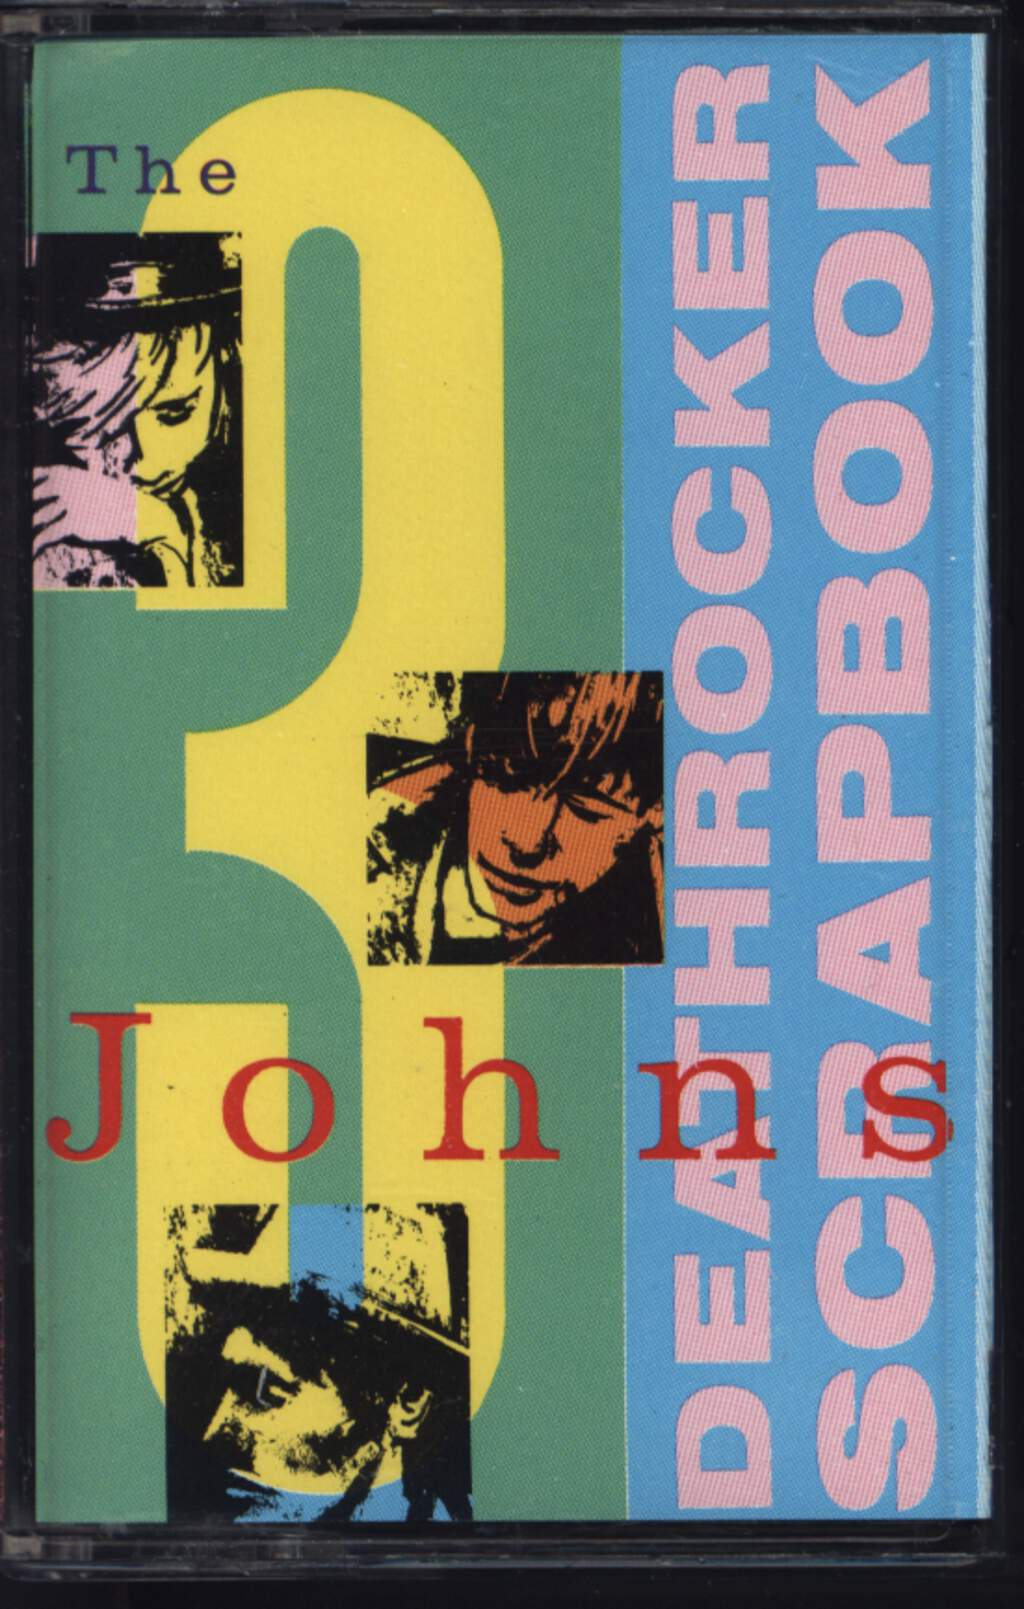 The Three Johns: Deathrocker Scrapbook, Compact Cassette